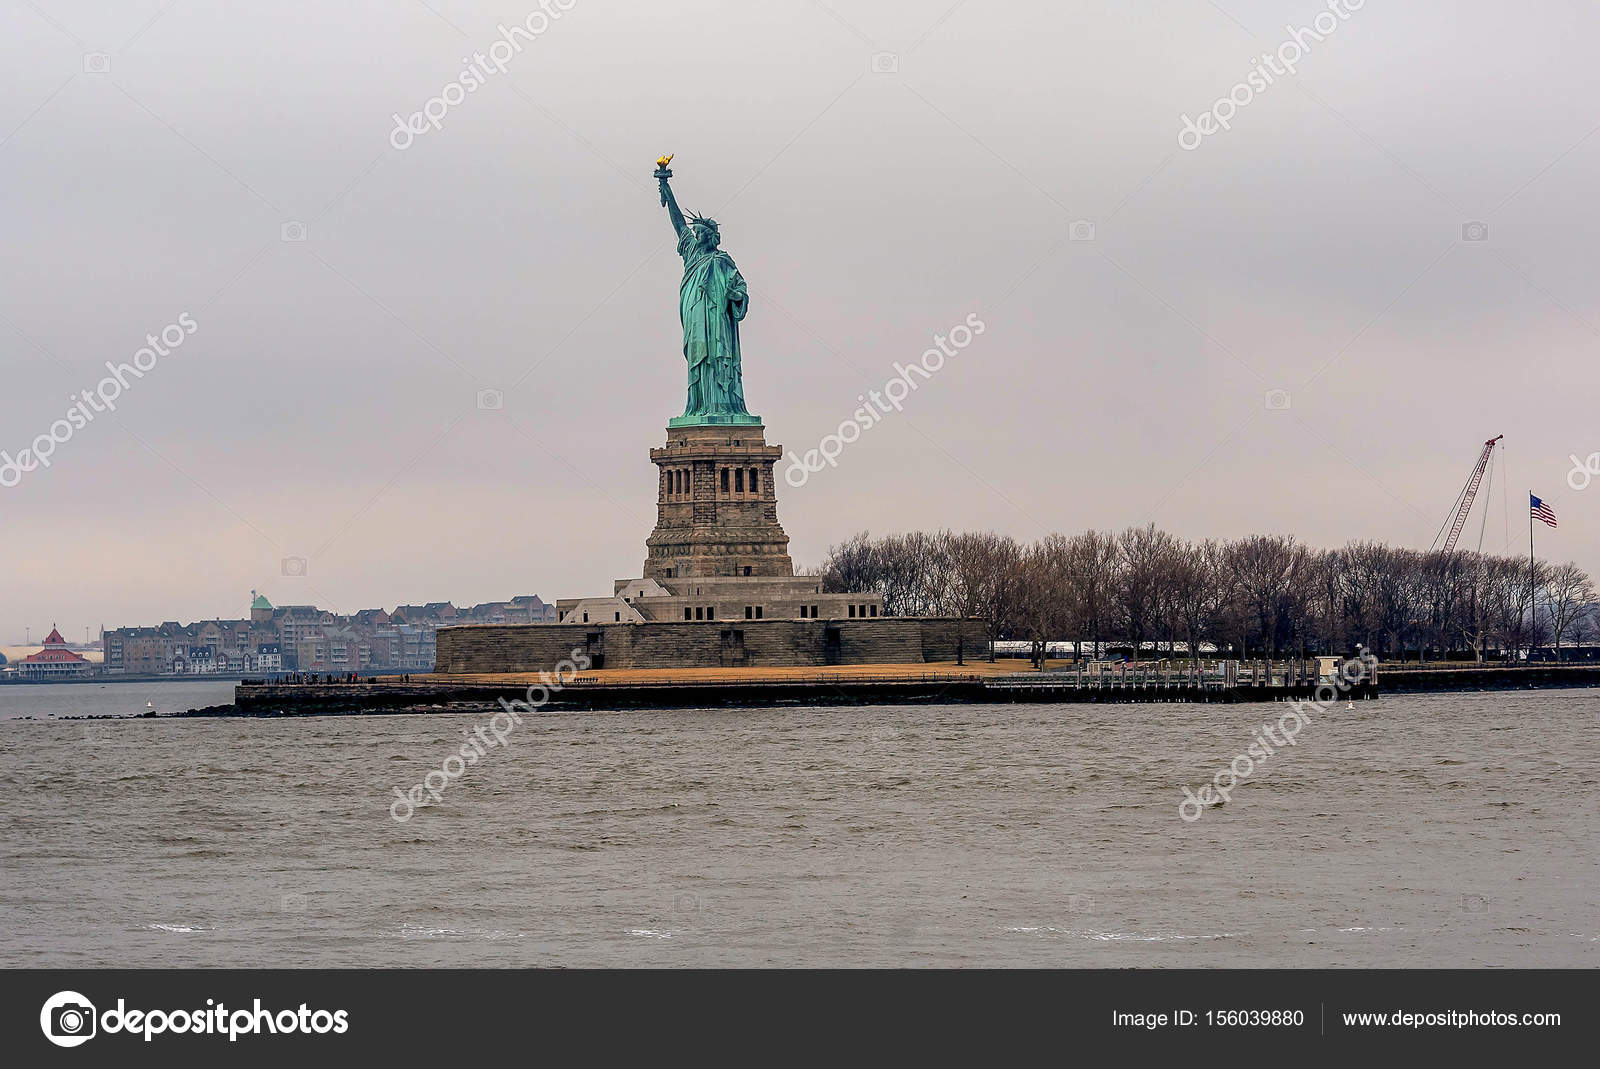 Statue Of Liberty From The Ferry Boat New York City Stock